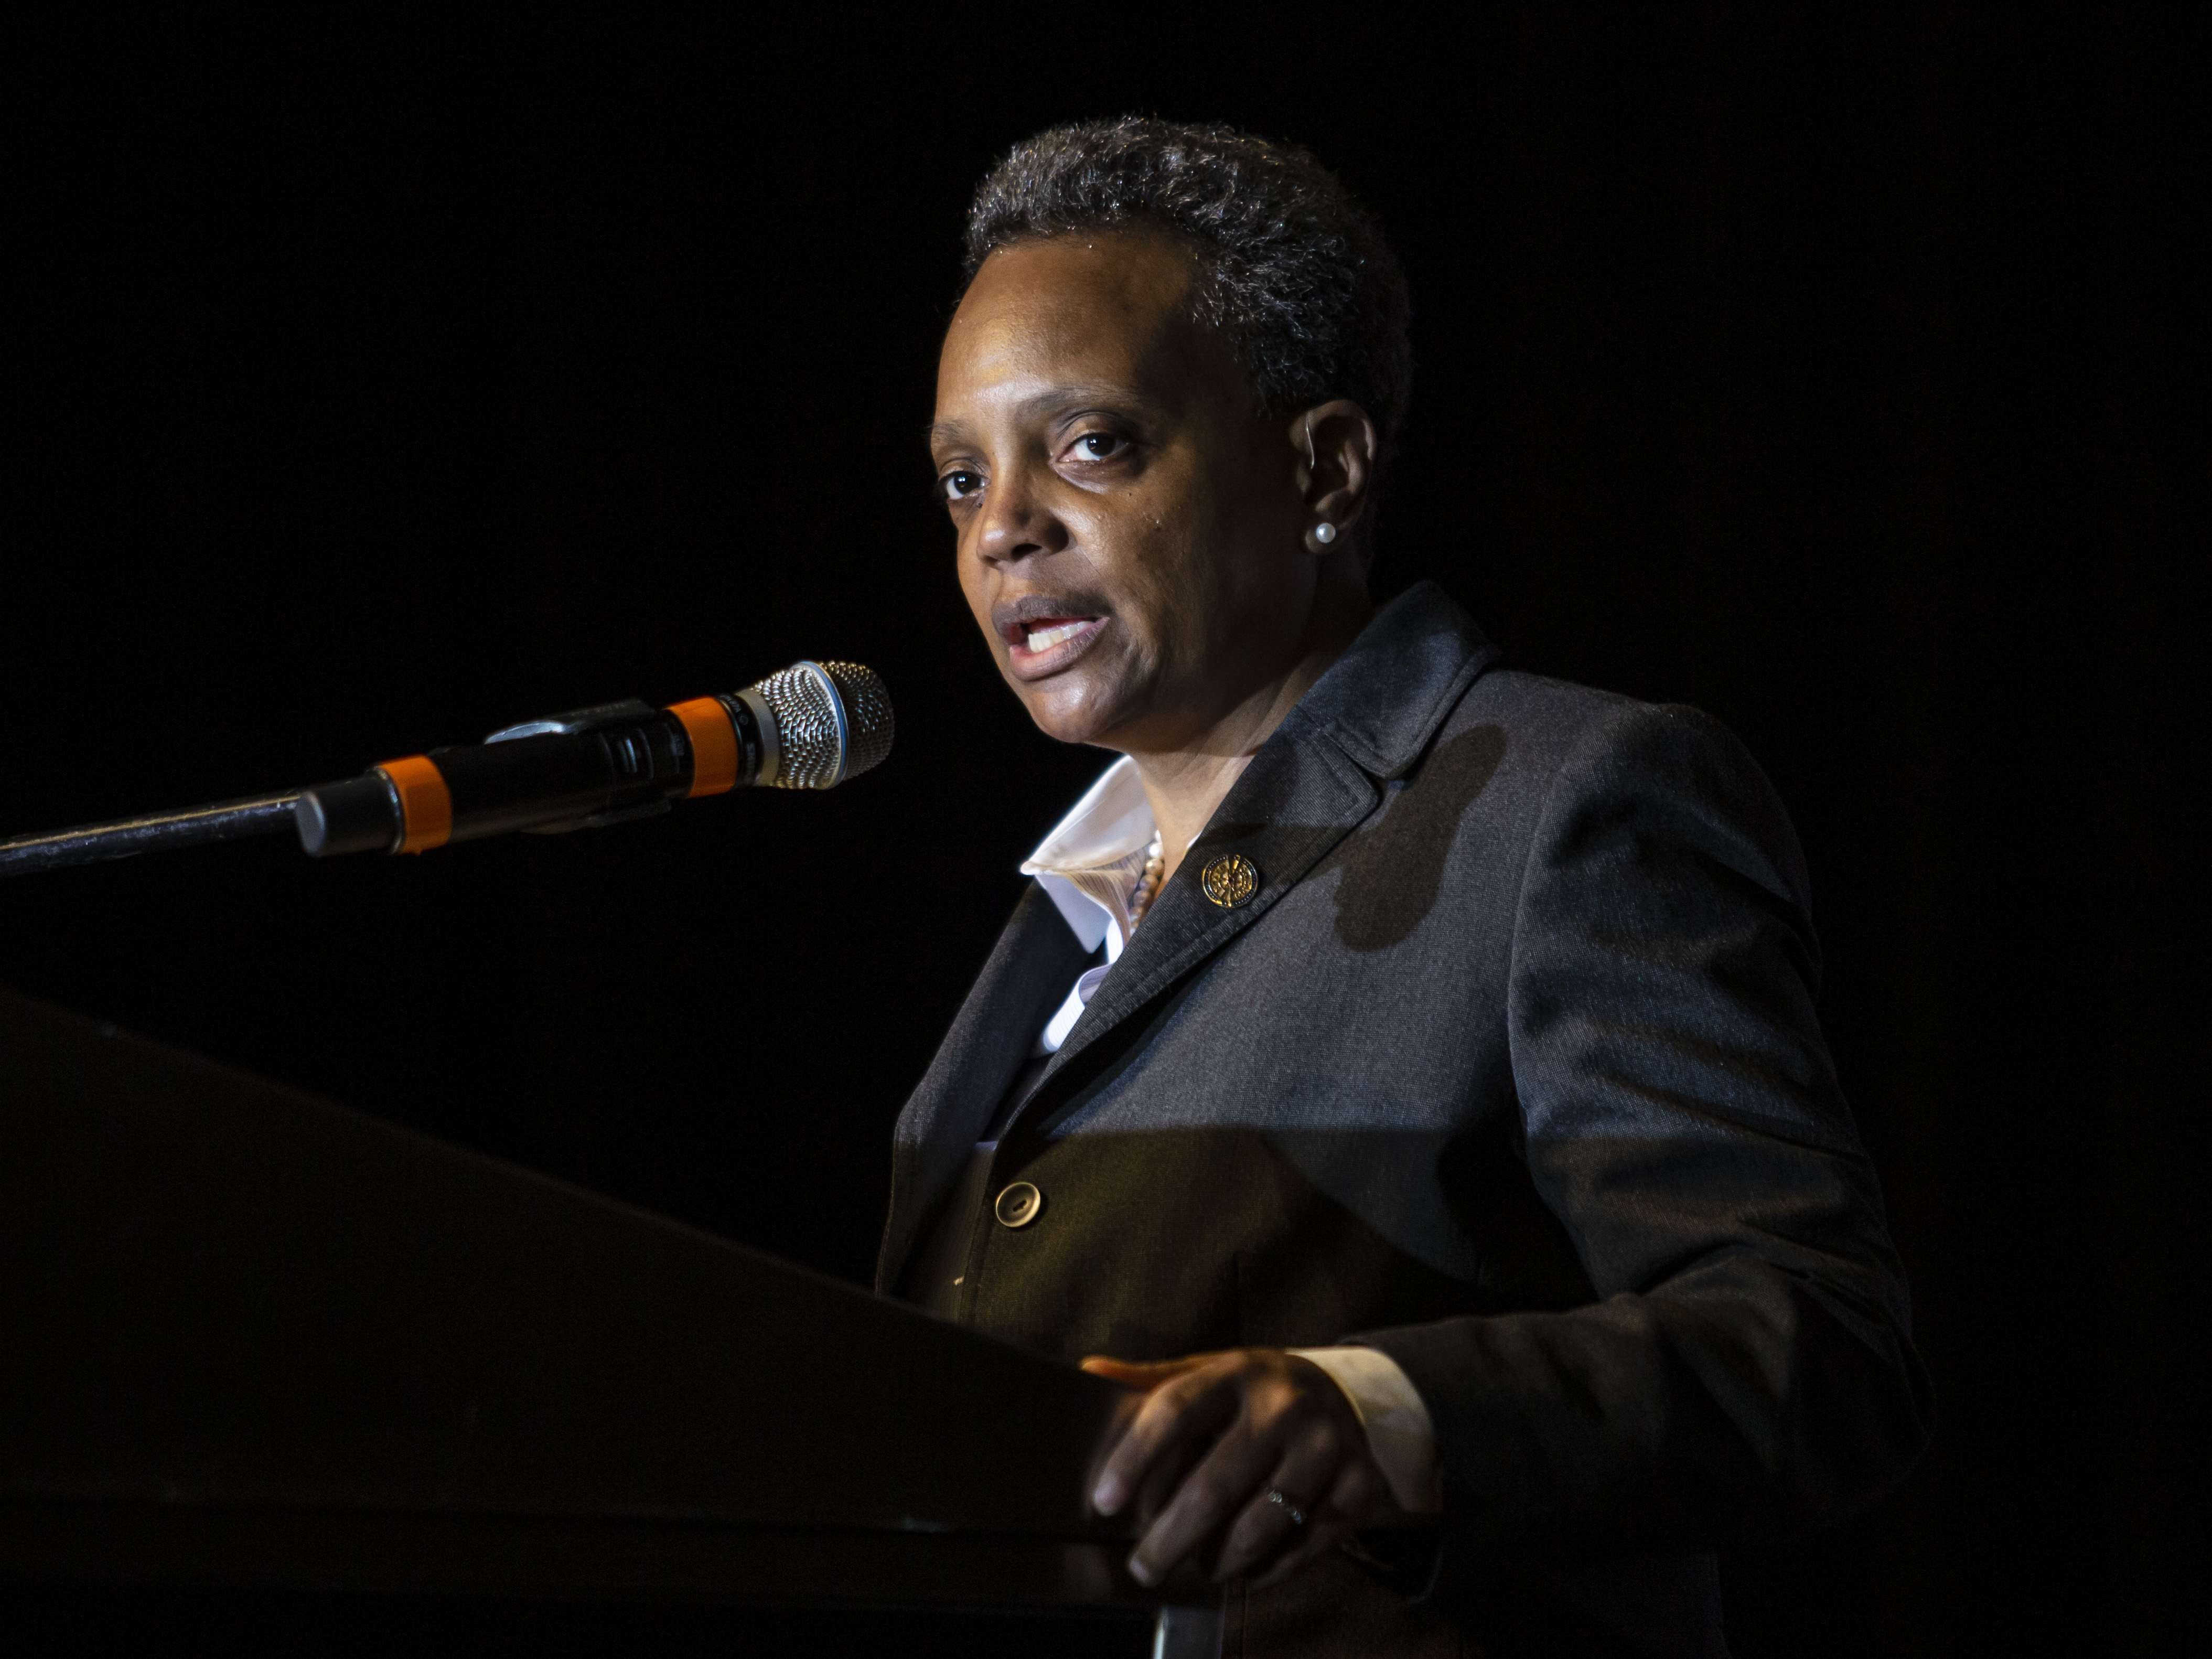 Mayor Lori Lightfoot speaks Monday during the Rainbow PUSH Coalition's 30th annual Dr. Martin Luther King Jr. Scholarship Breakfast at the Hyatt Regency Chicago.